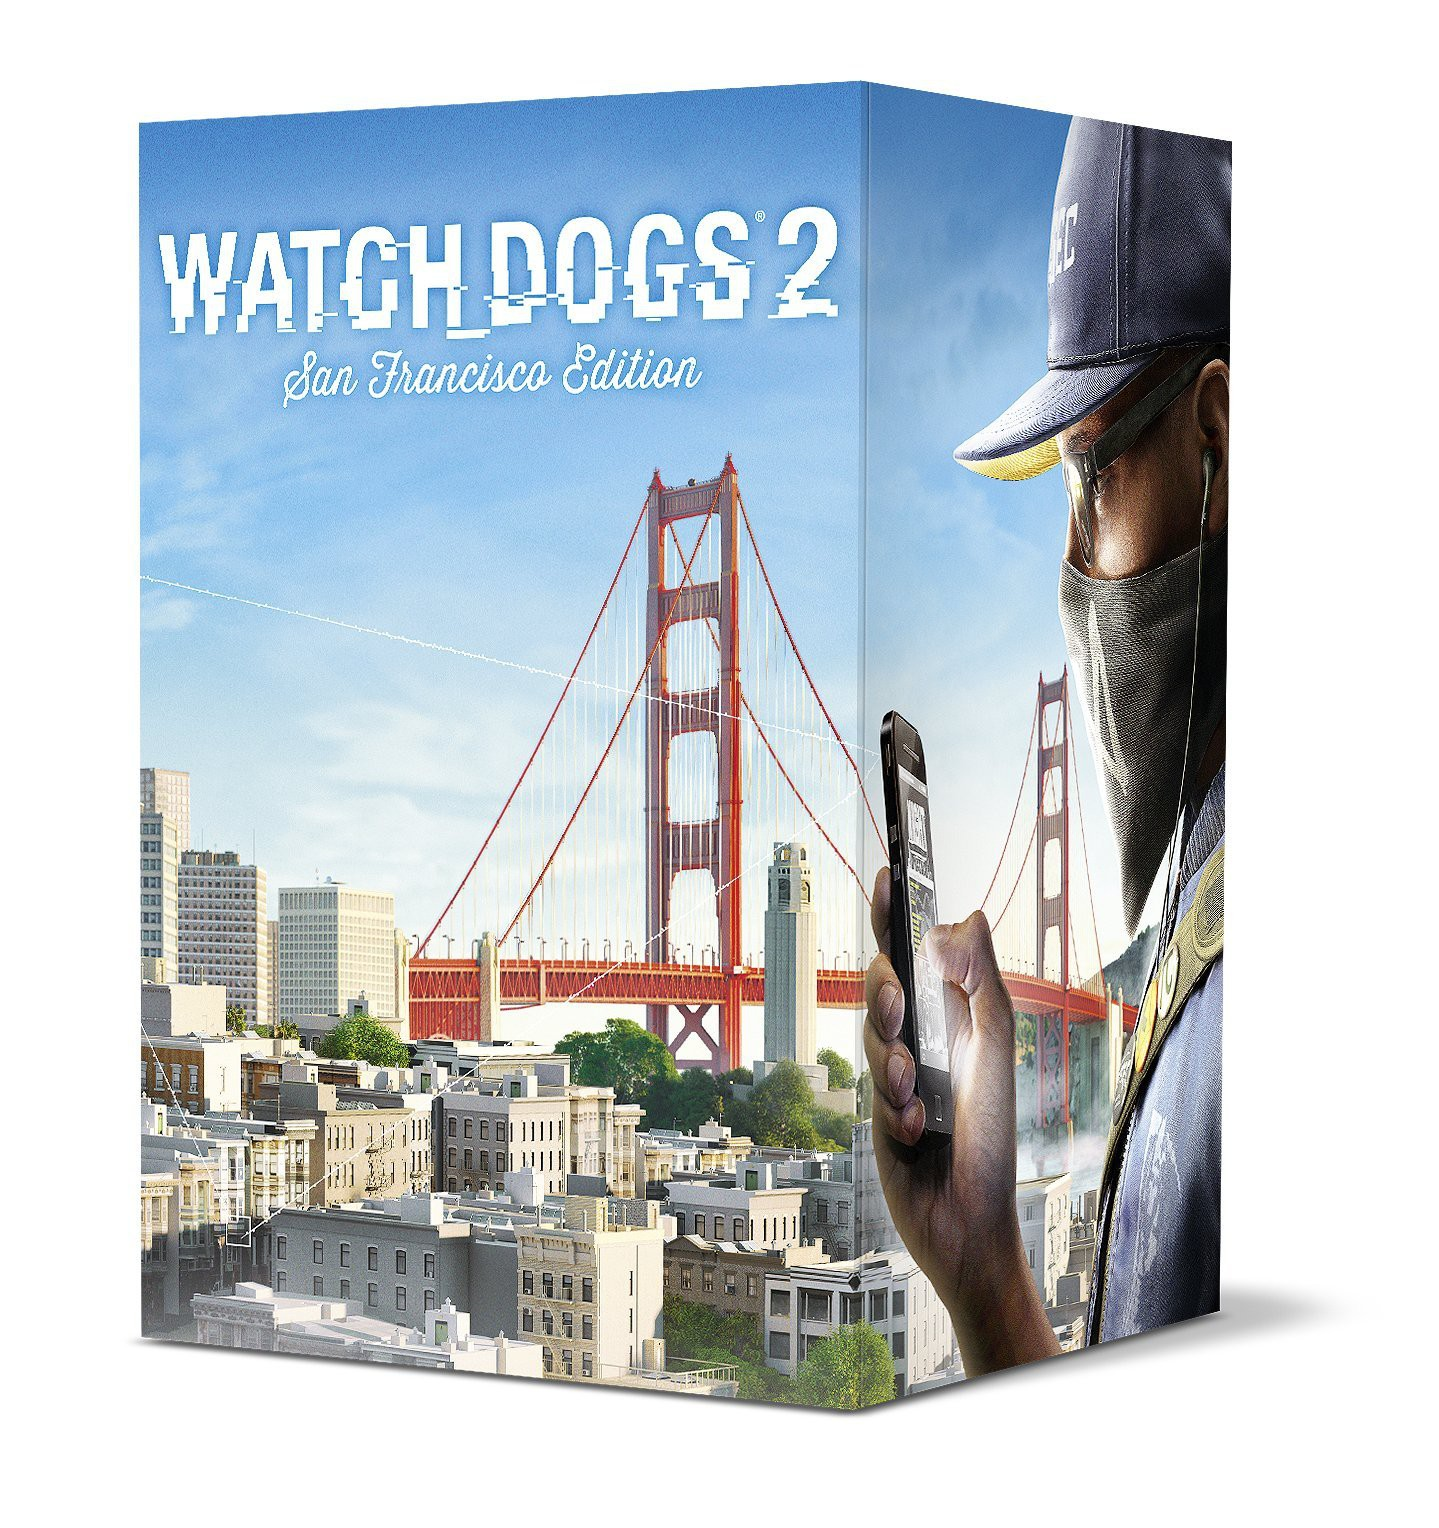 Watchdogs 2: San Francisco Edition